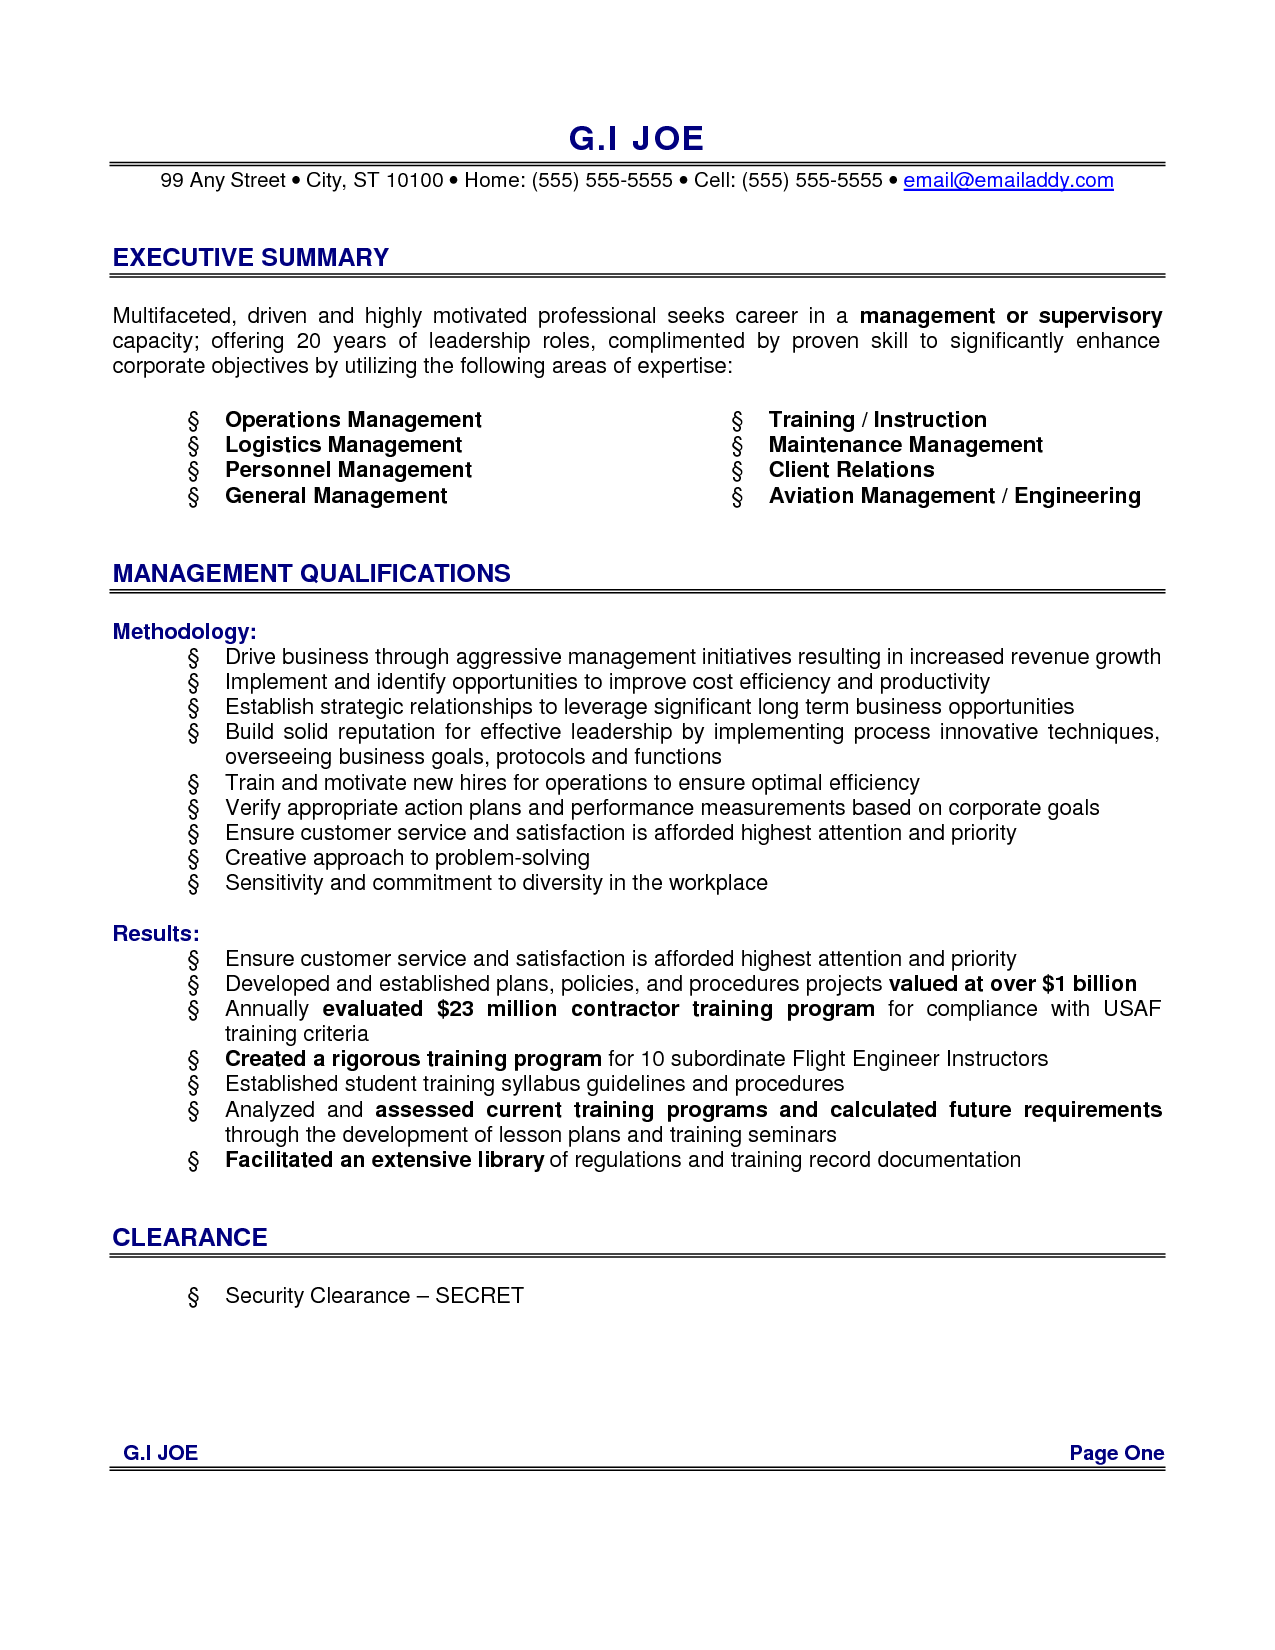 Executive Resume Examples Resumeexamples For Executive Summary With Management Qualifications